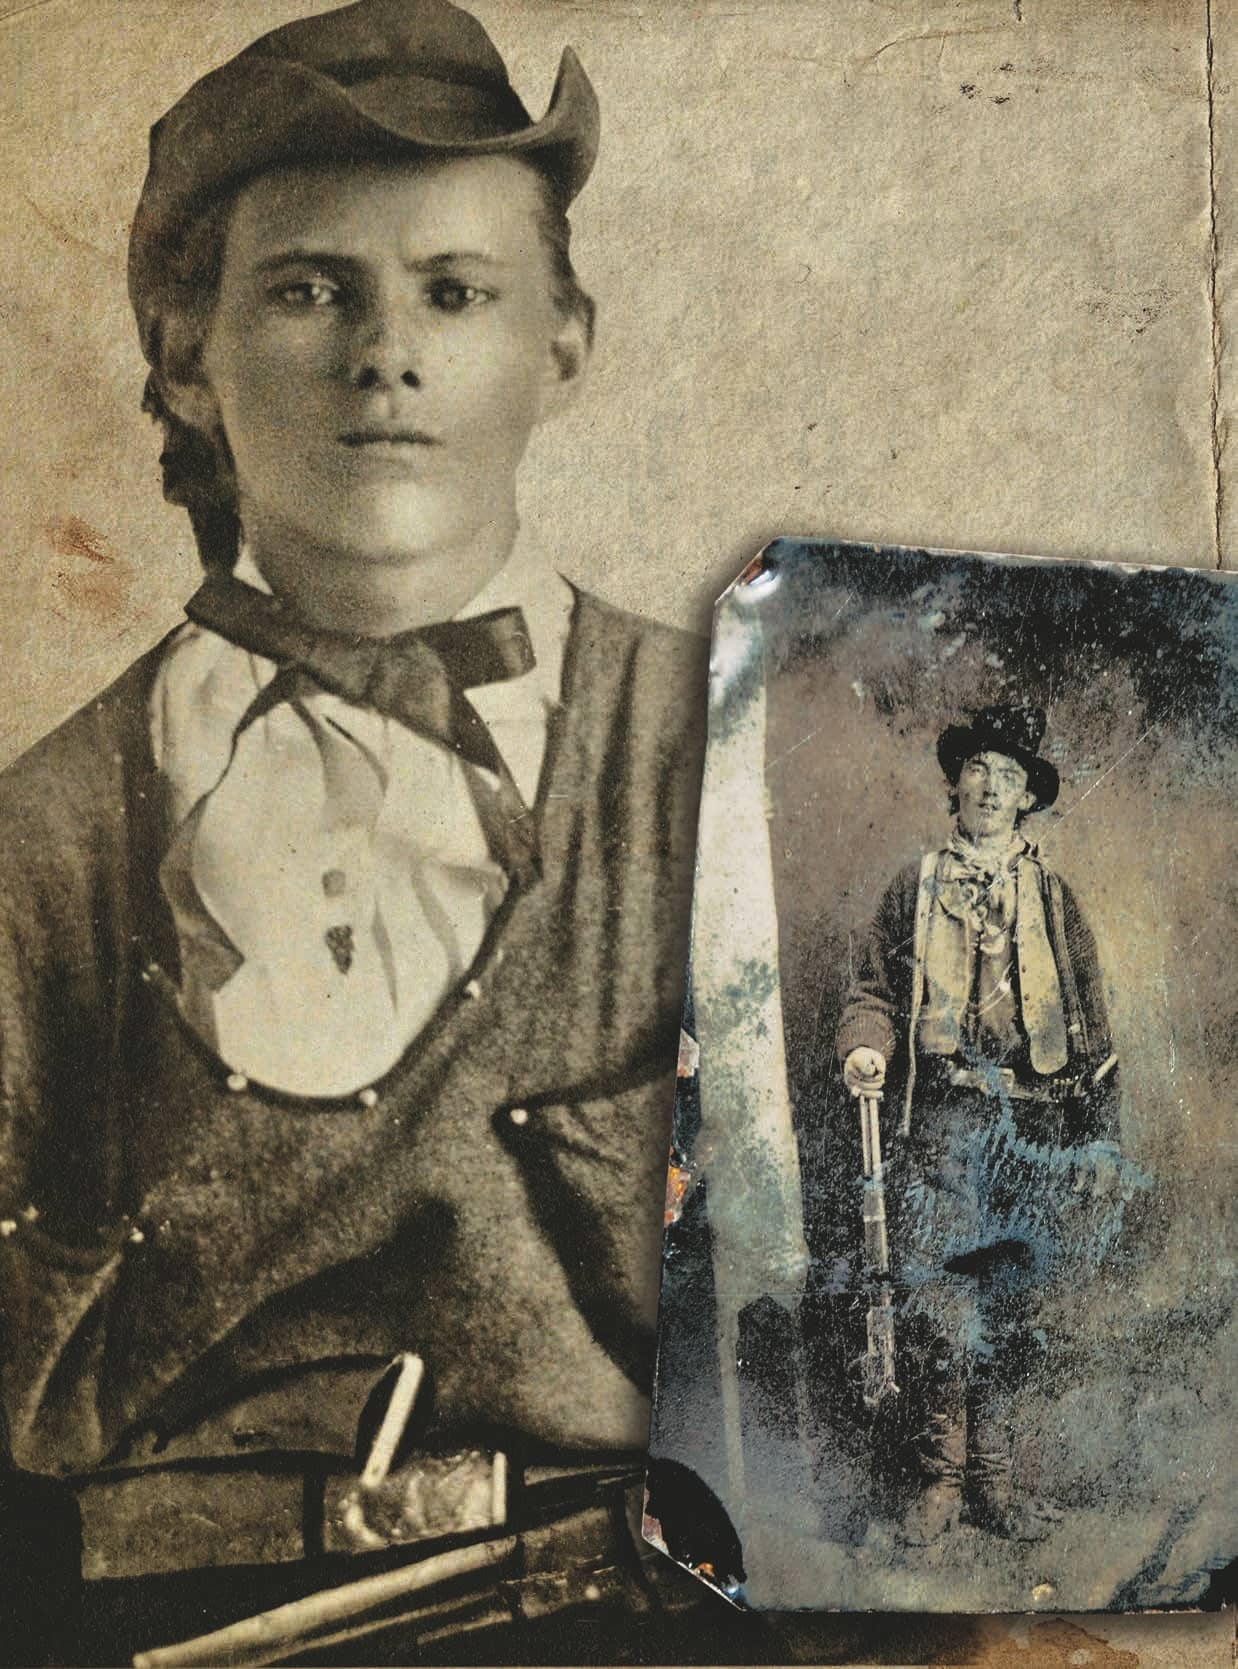 BROTHERS IN BLOOD JESSE JAMES AND BILLY THE KID